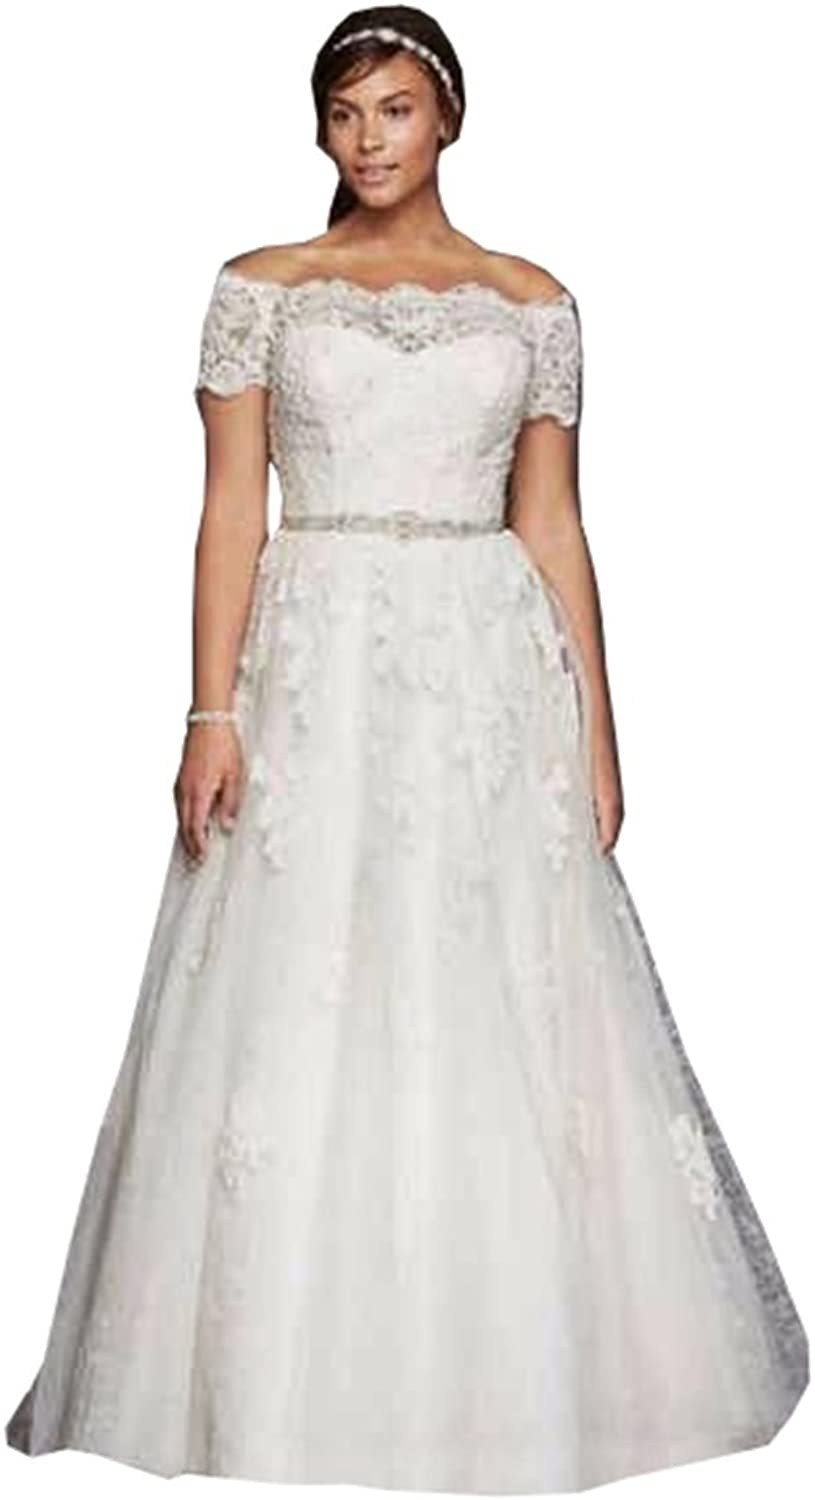 Ellystar Women's Plus Size ALine Tulle Covered Button Off Shoulder Bridal Gowns